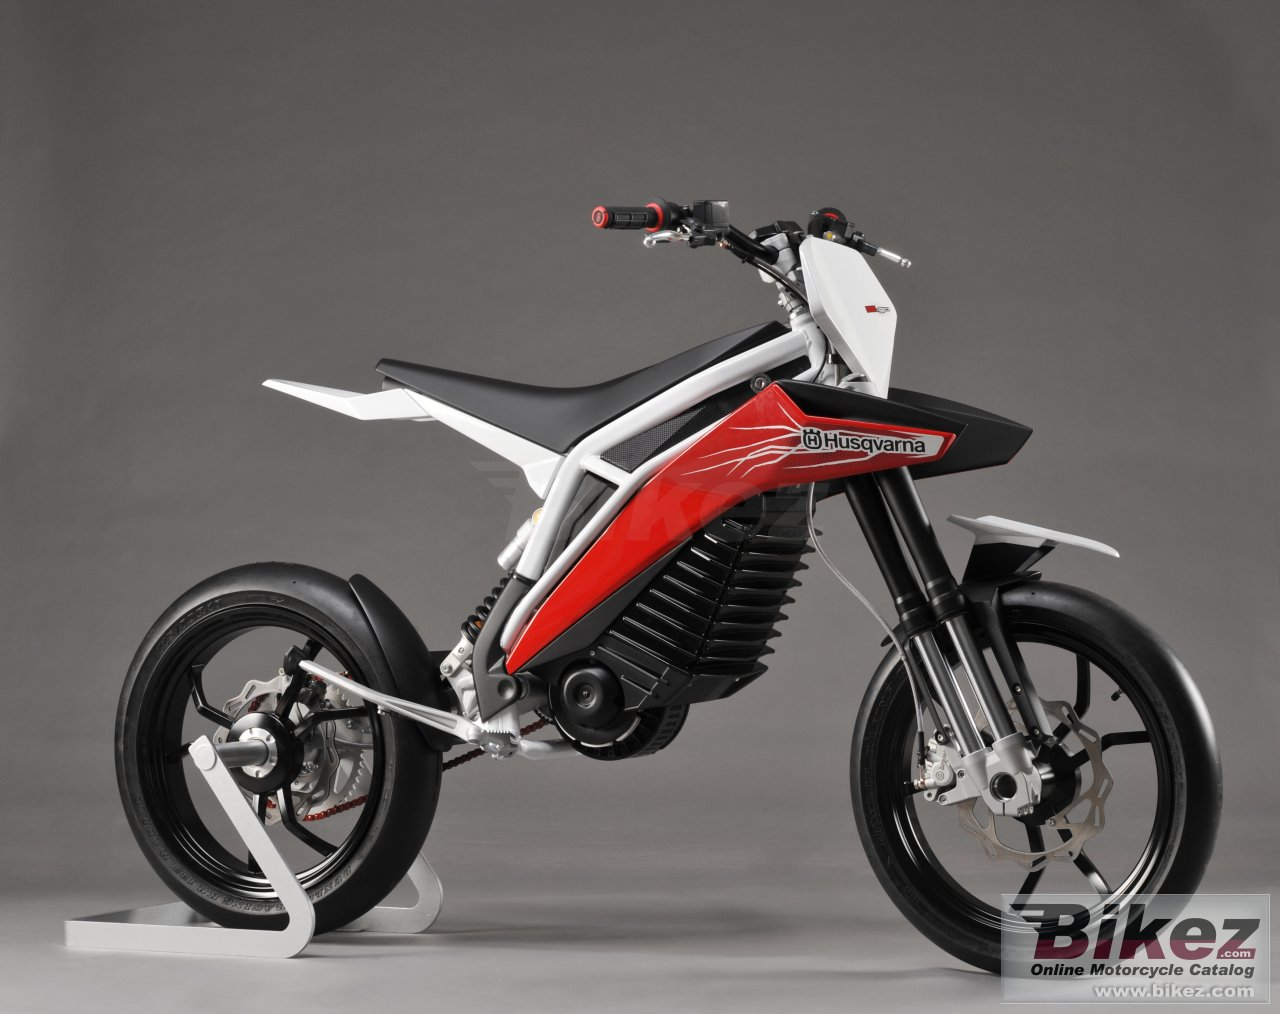 Big Husqvarna concept e-go picture and wallpaper from Bikez.com